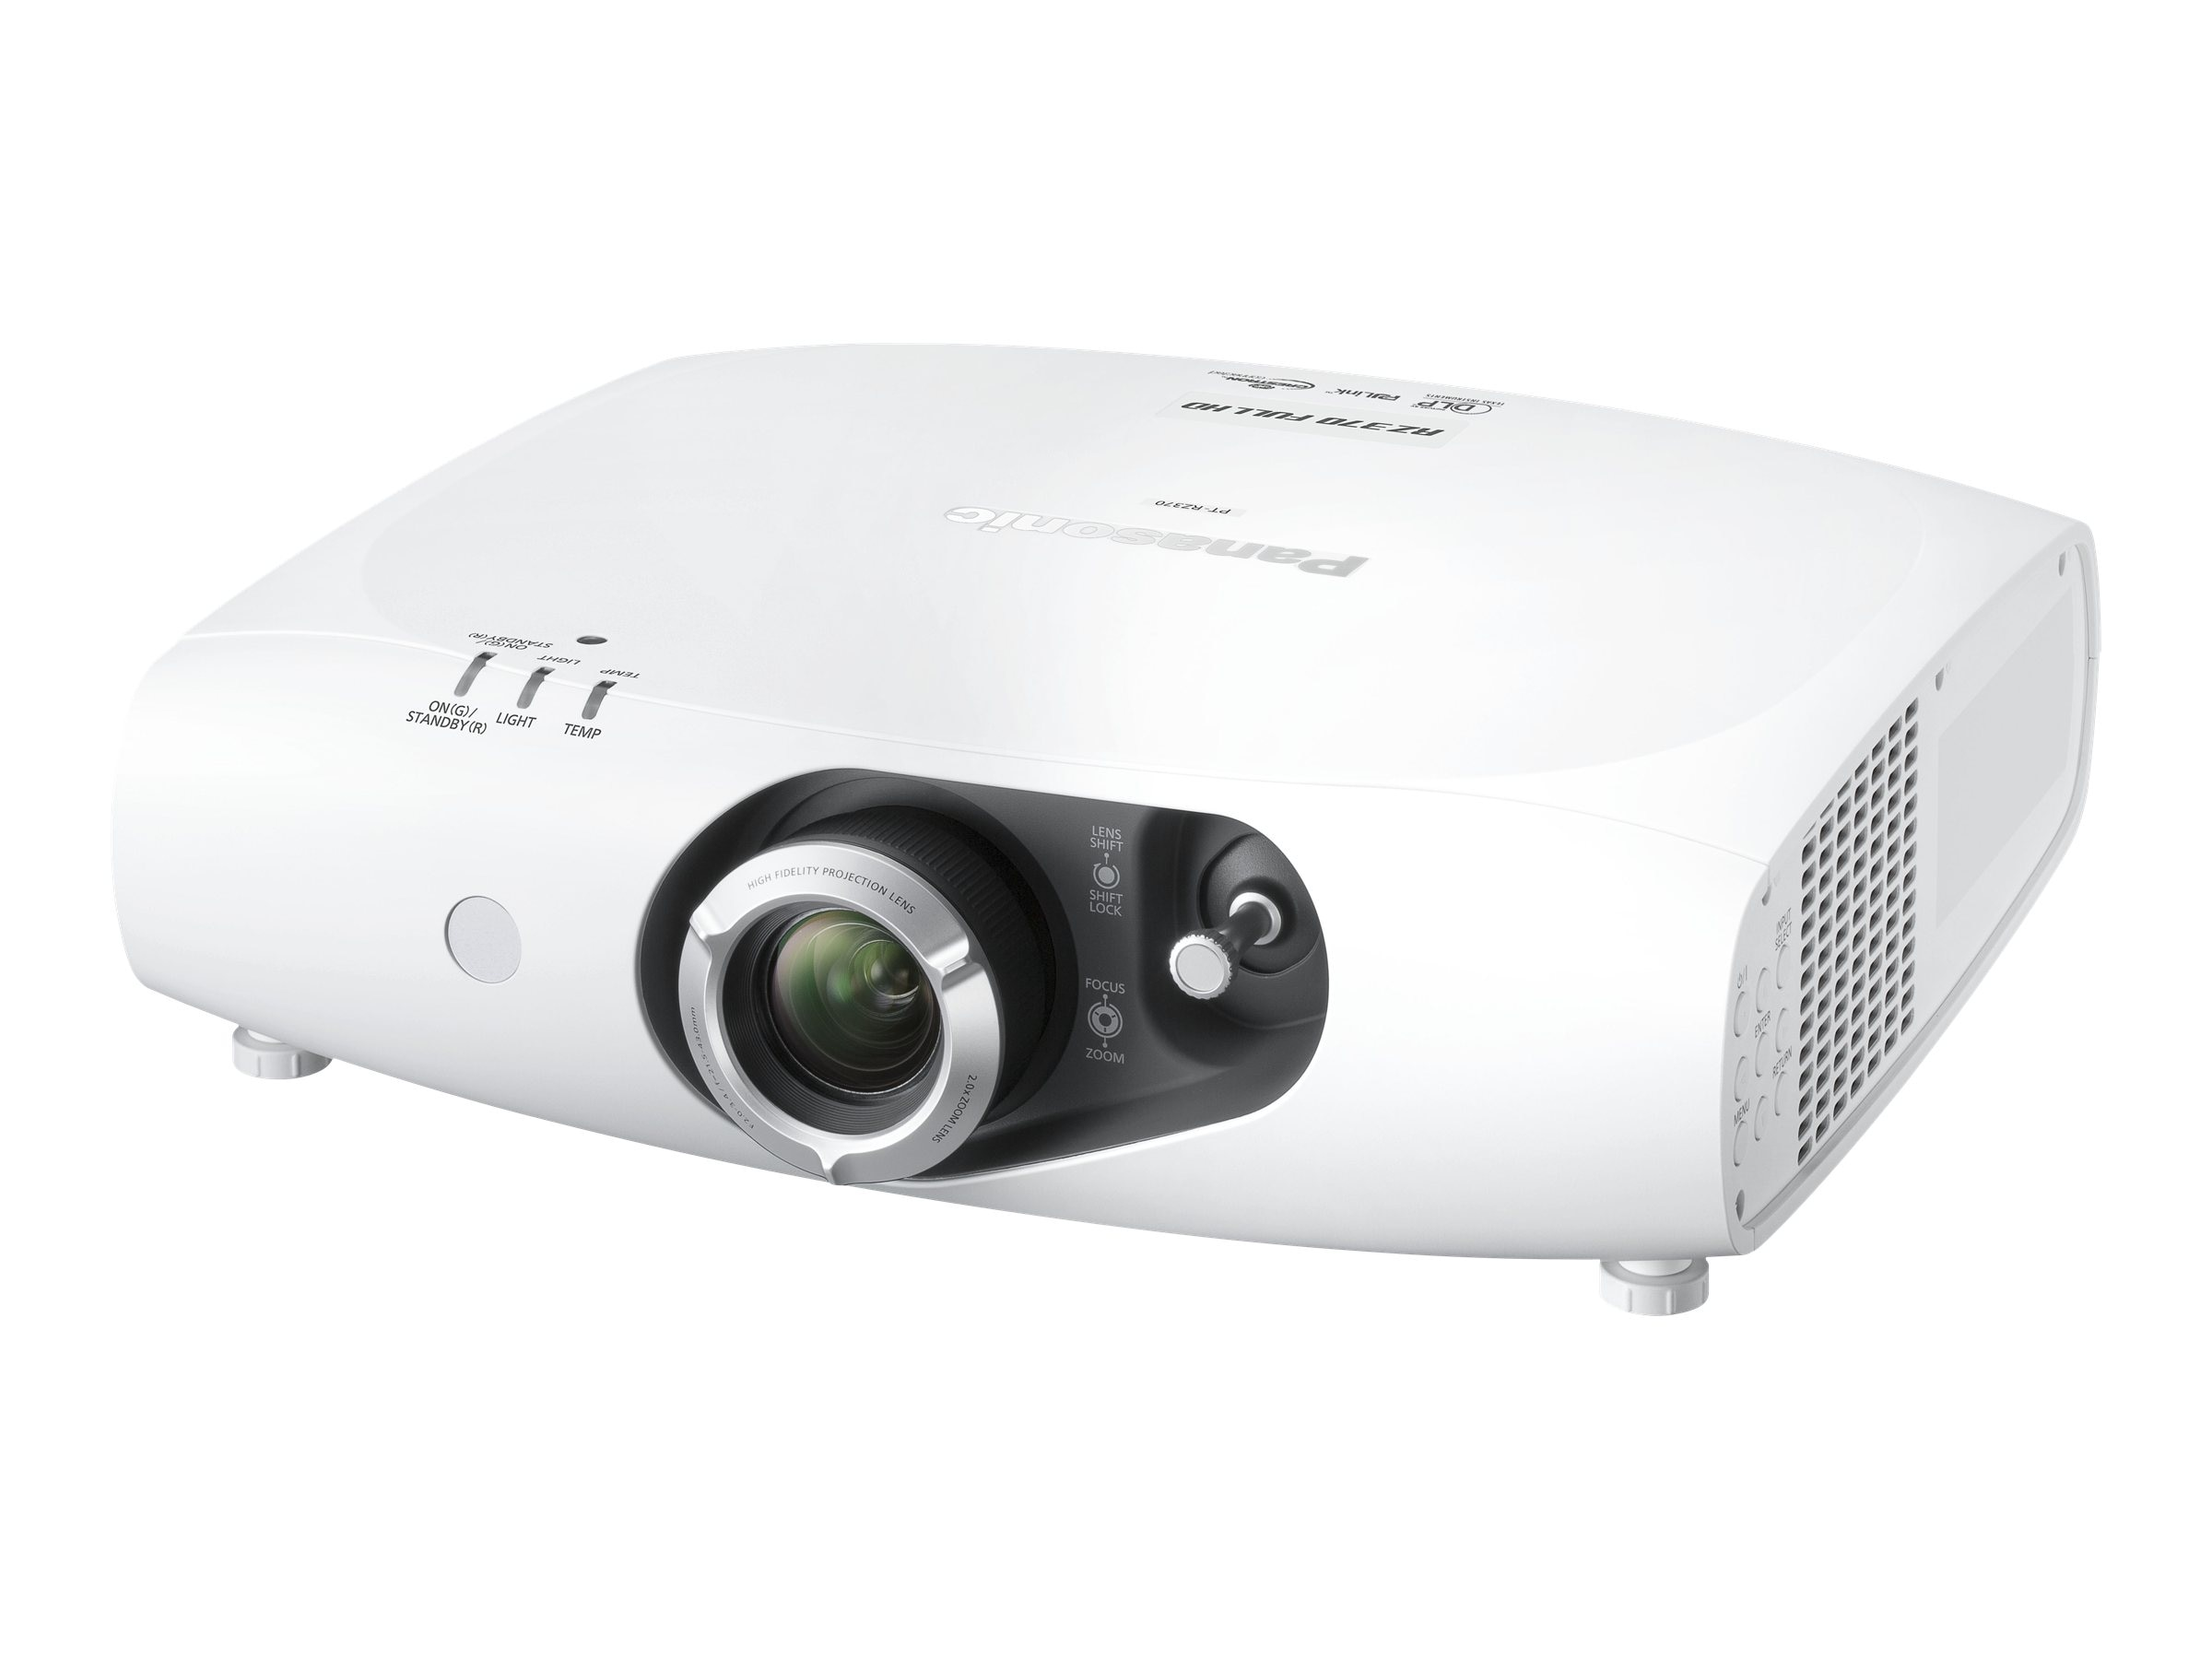 Open Box Panasonic PTRZ370U Full HD Projector, 3500 Lumens, PTRZ370U, 17871646, Projectors